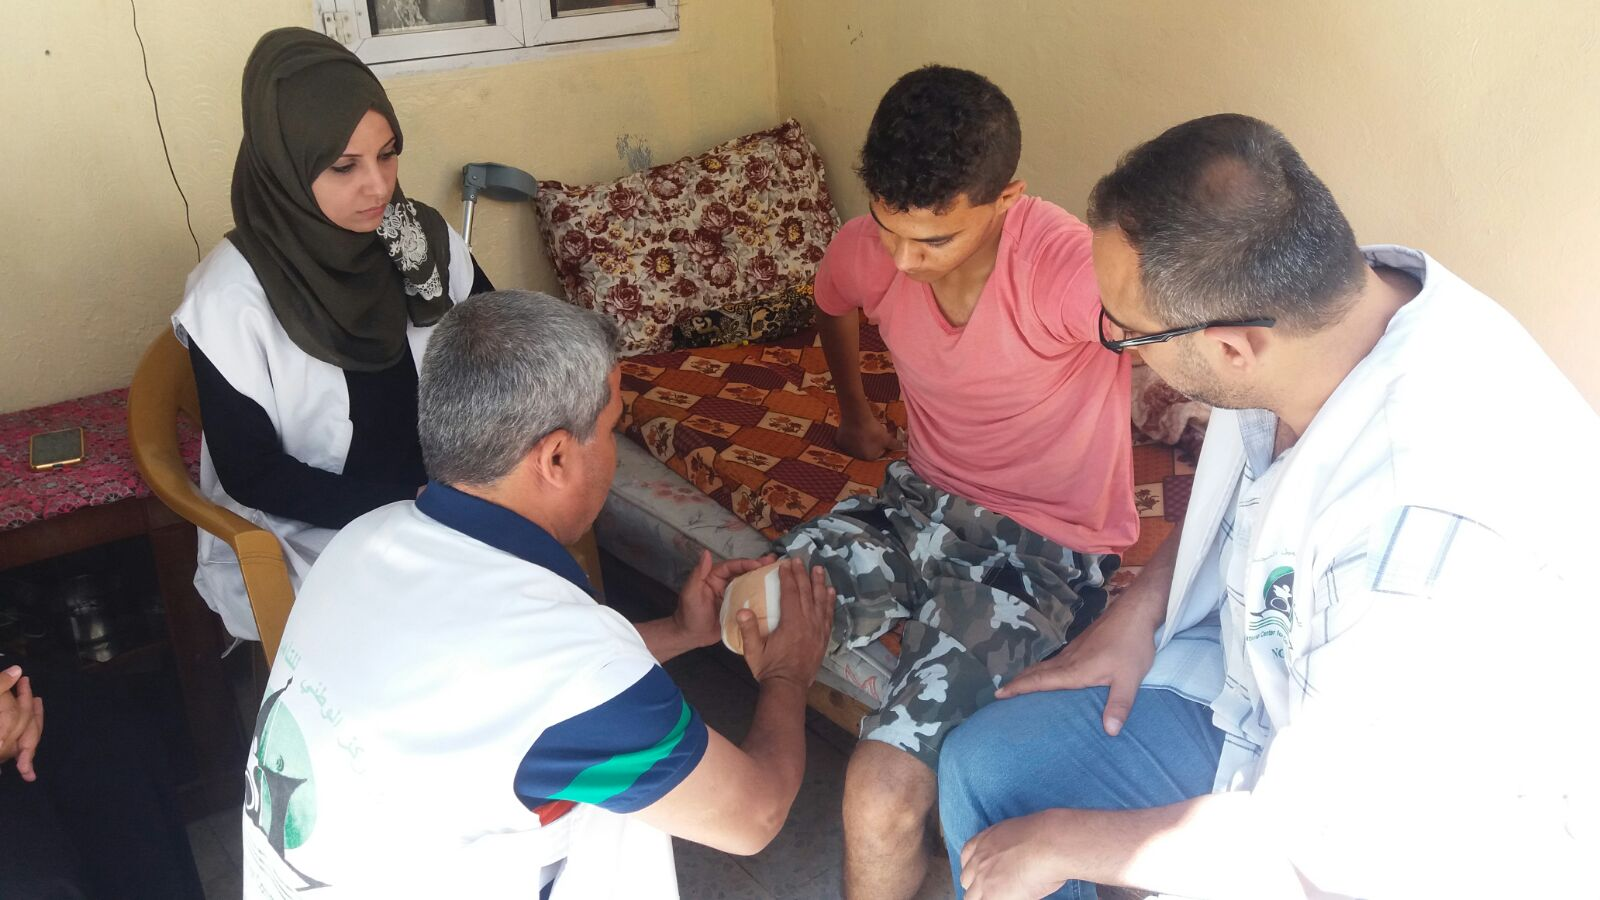 NCCR TEAMS CONTINUE HOME CARE VISITS TO NEWLY INJURED PEOPLE AFTER PROTESTS ON GAZA BOARDERS